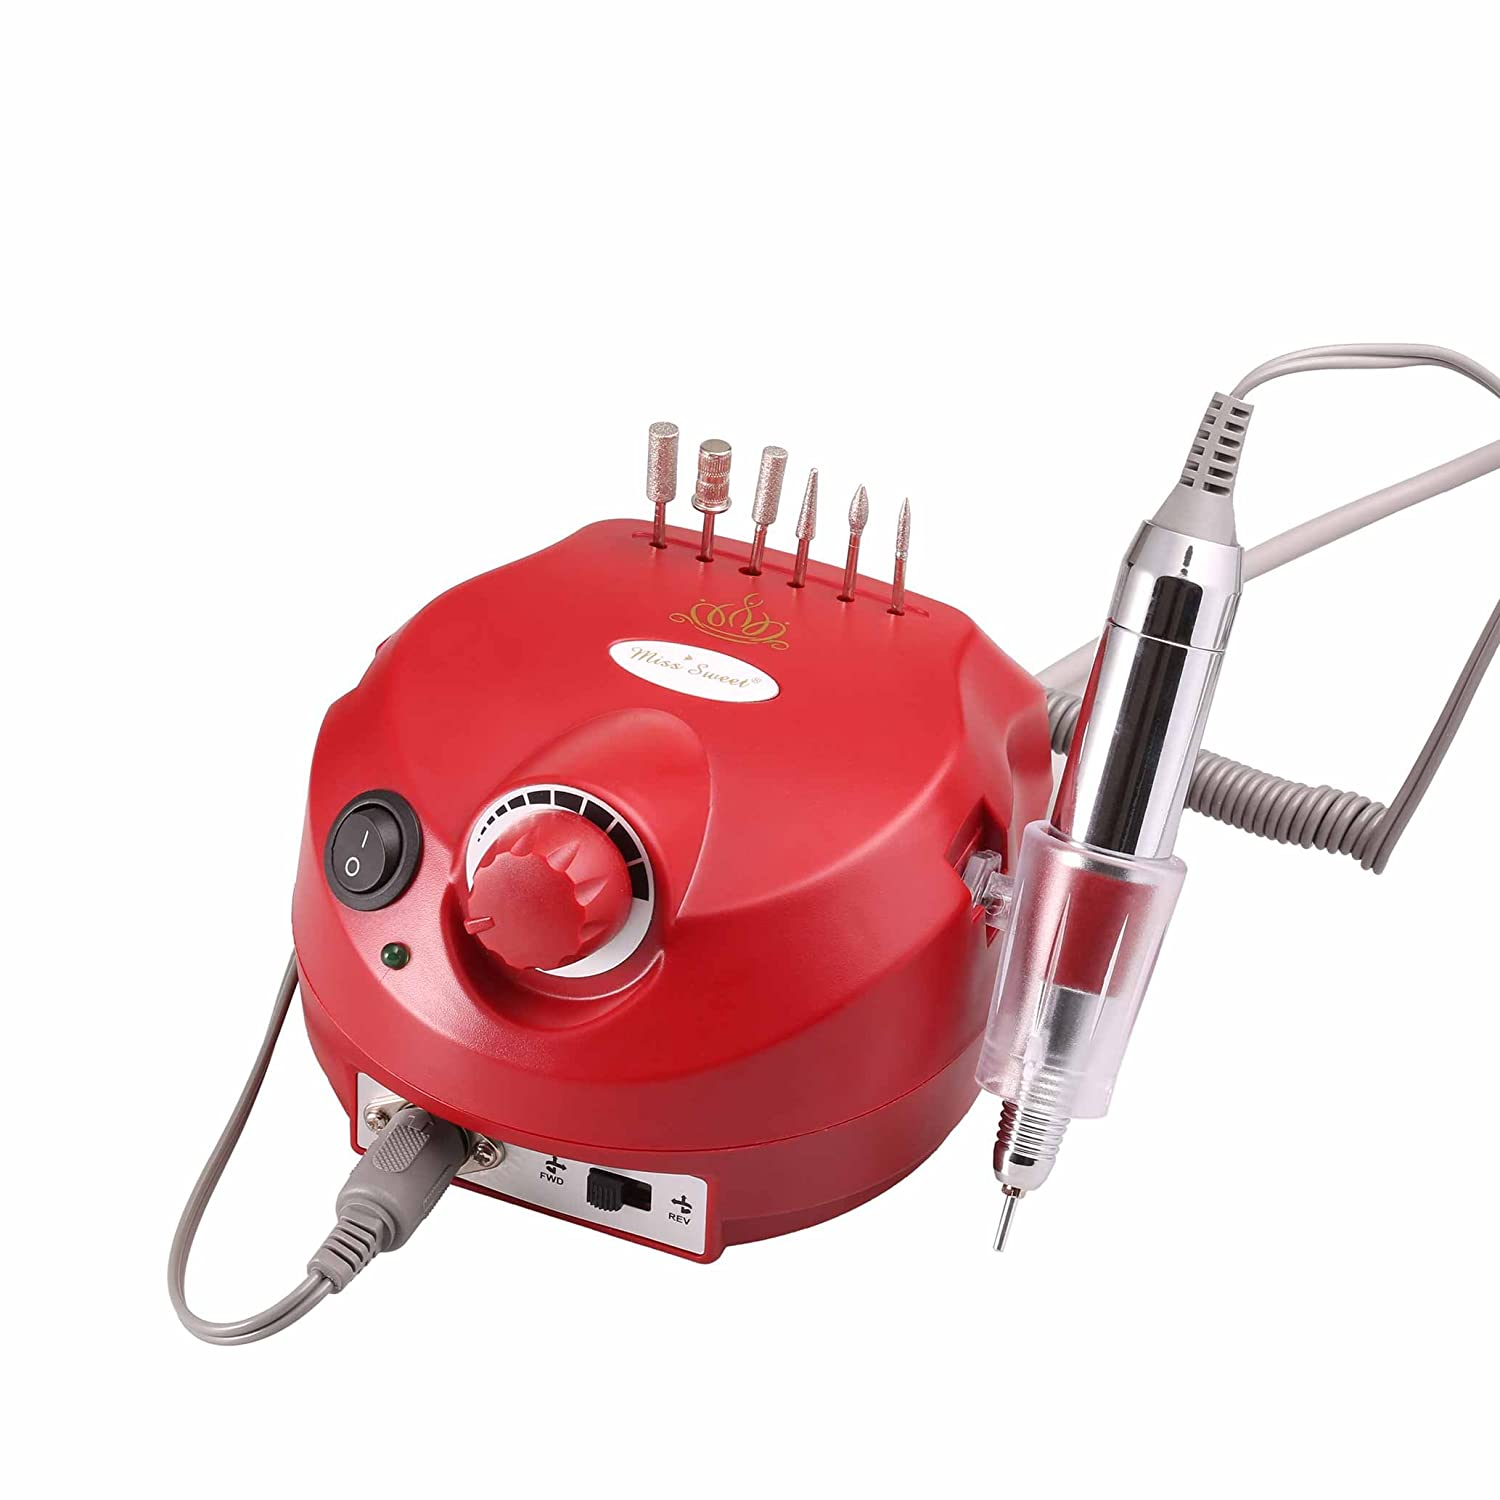 Miss Sweet Professional Electric Nail Drill for Acrylic Nails 30000RPM (Red)